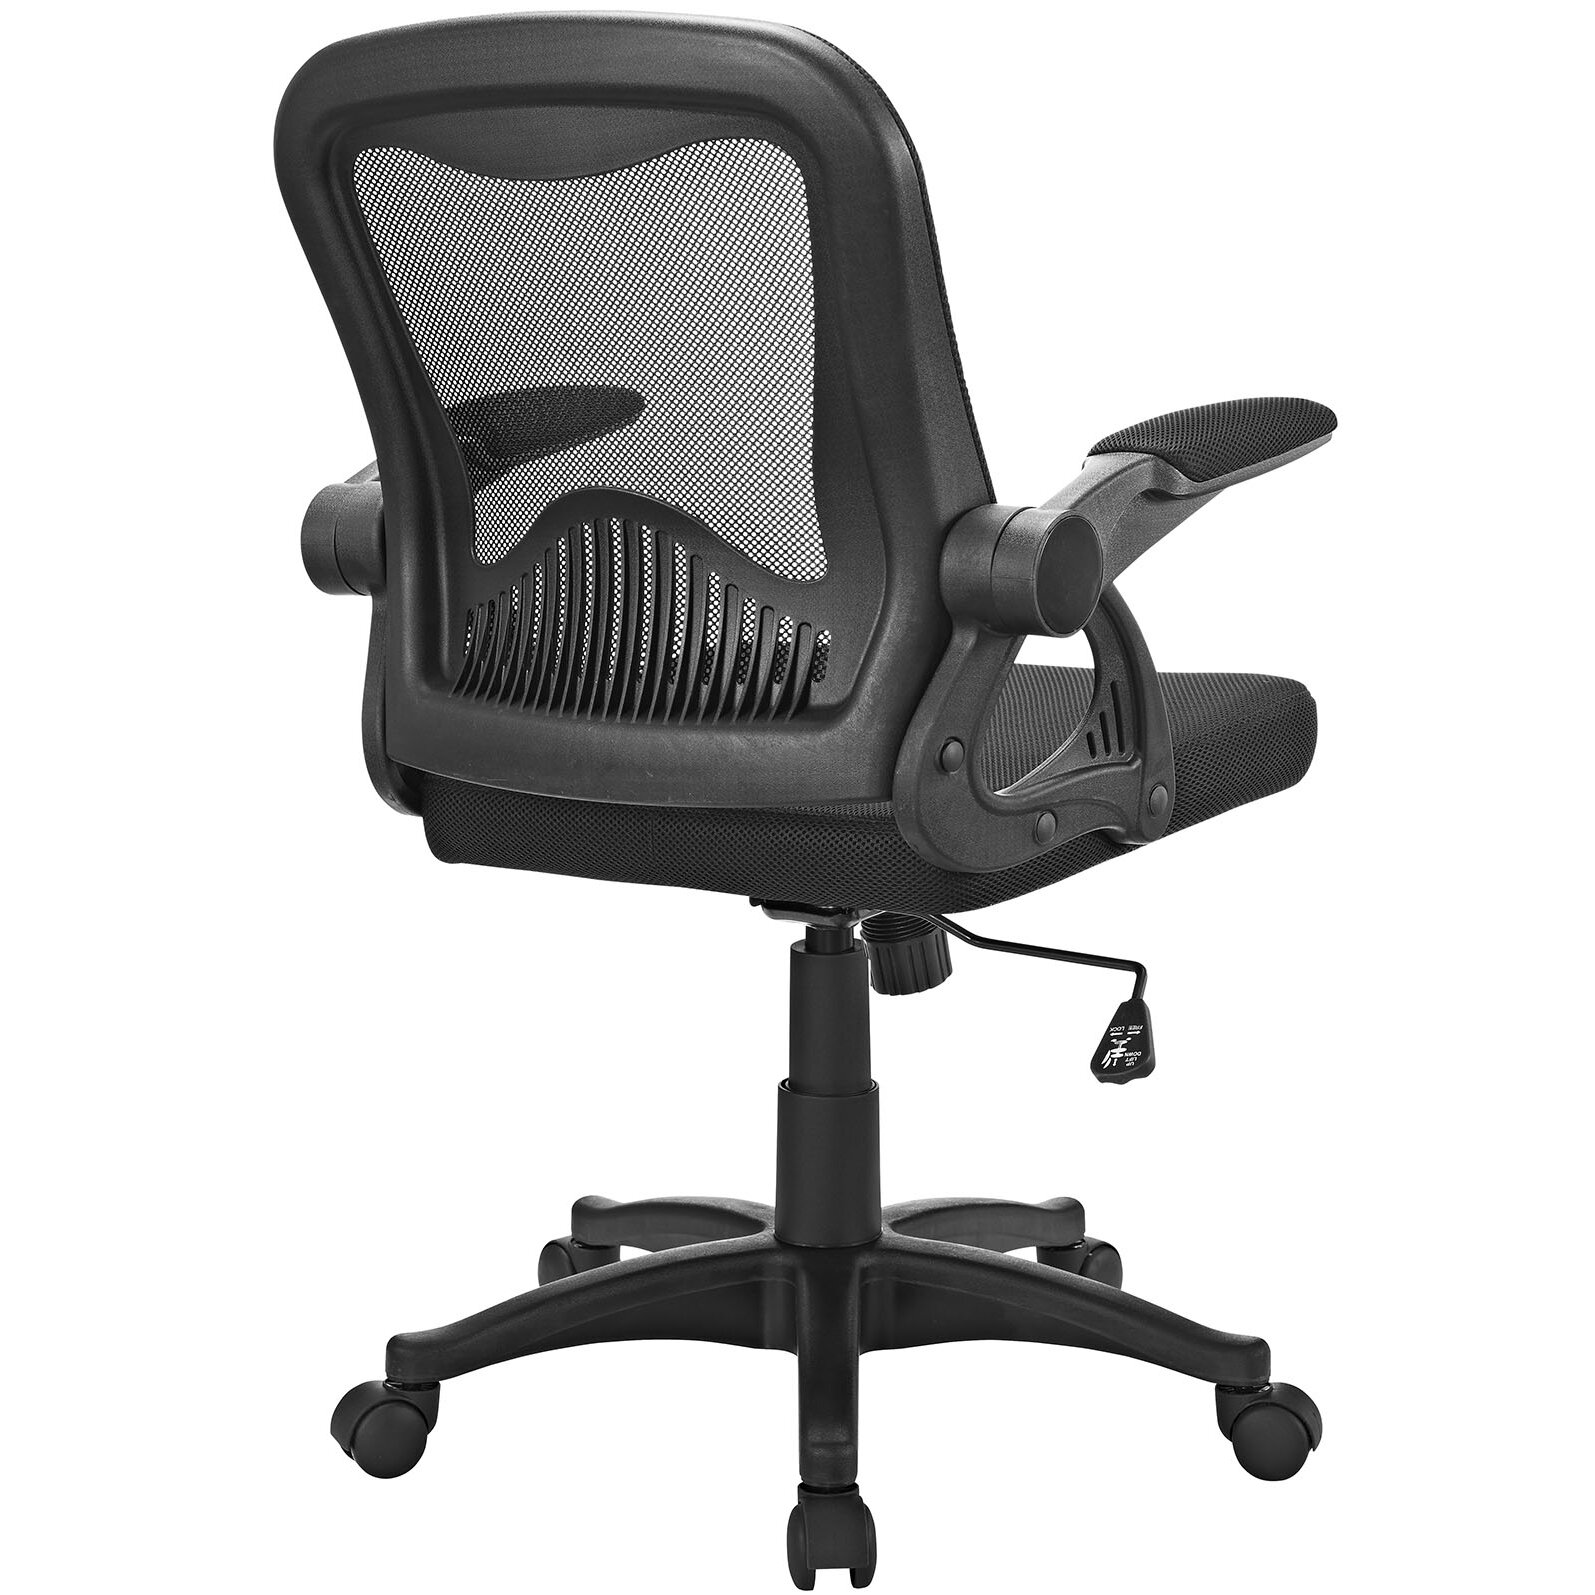 Modway Advance High Back Mesh fice Chair & Reviews